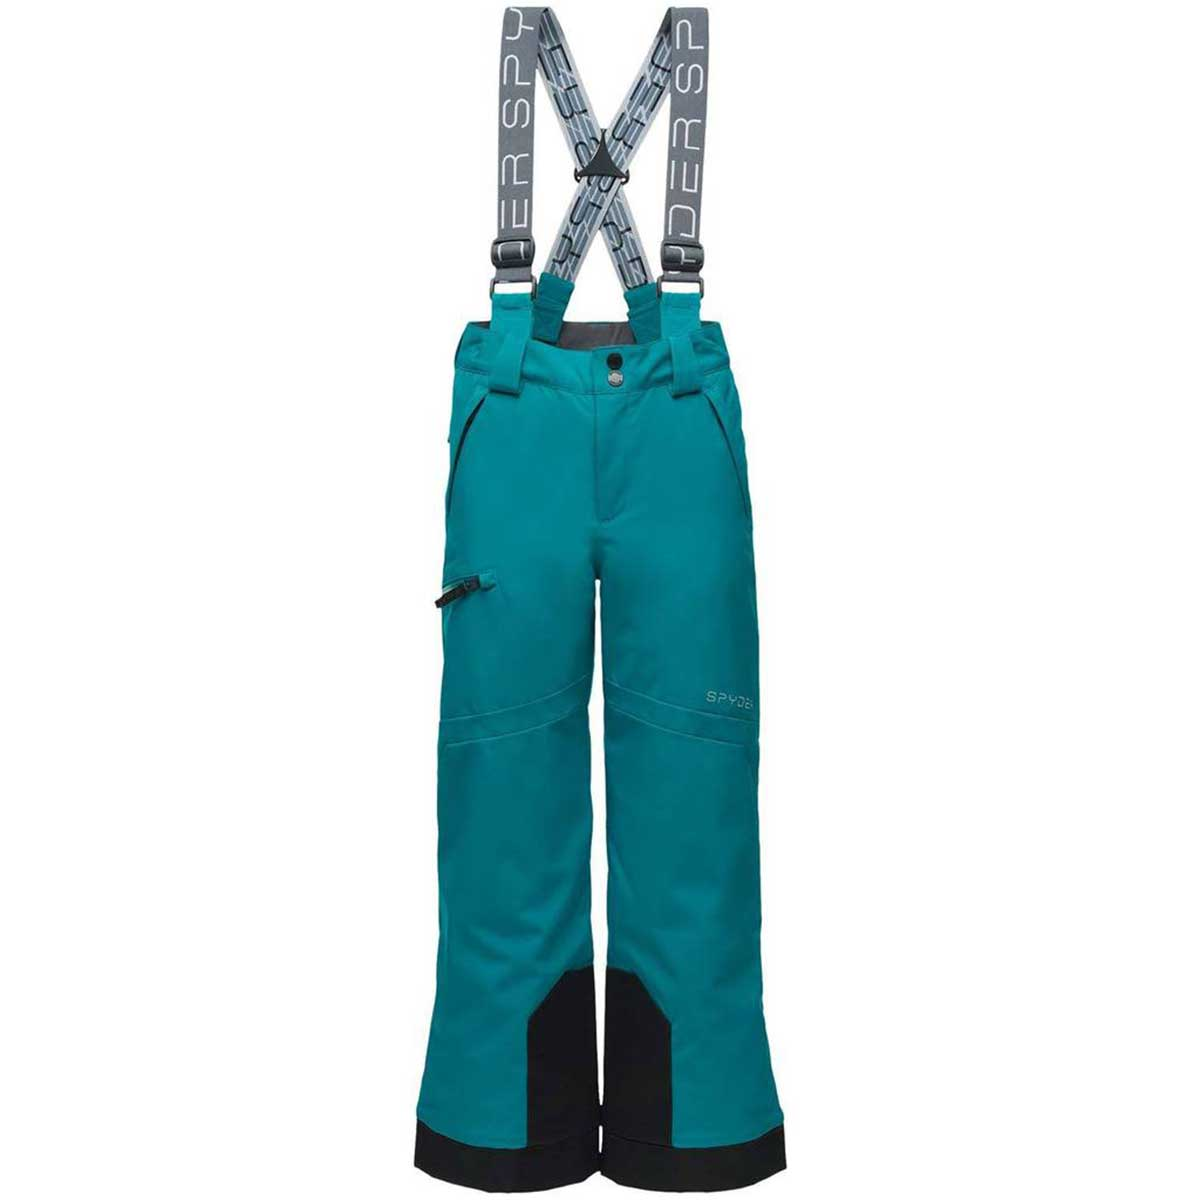 Spyder boys' Propulsion Pant in Swell front view